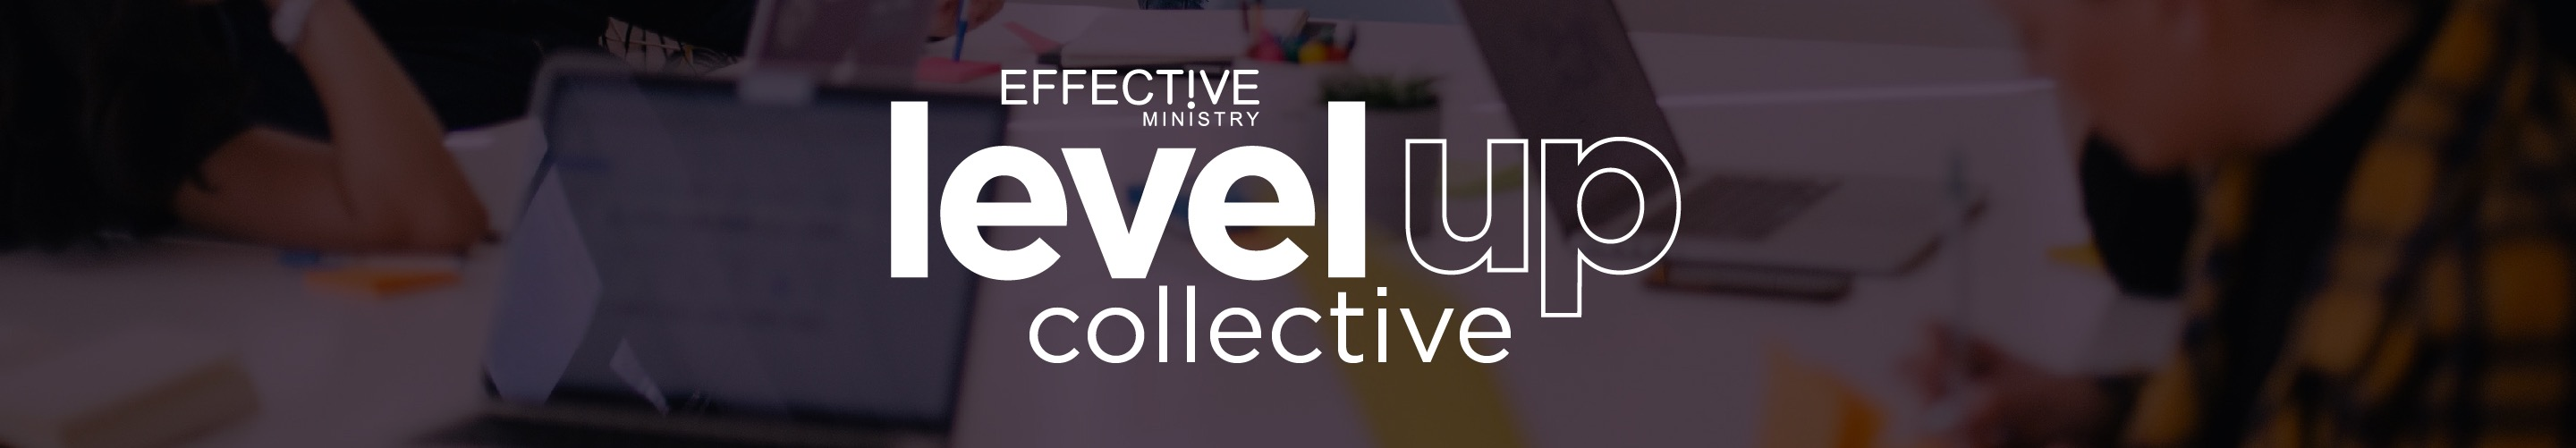 Levelup-workshop-collective